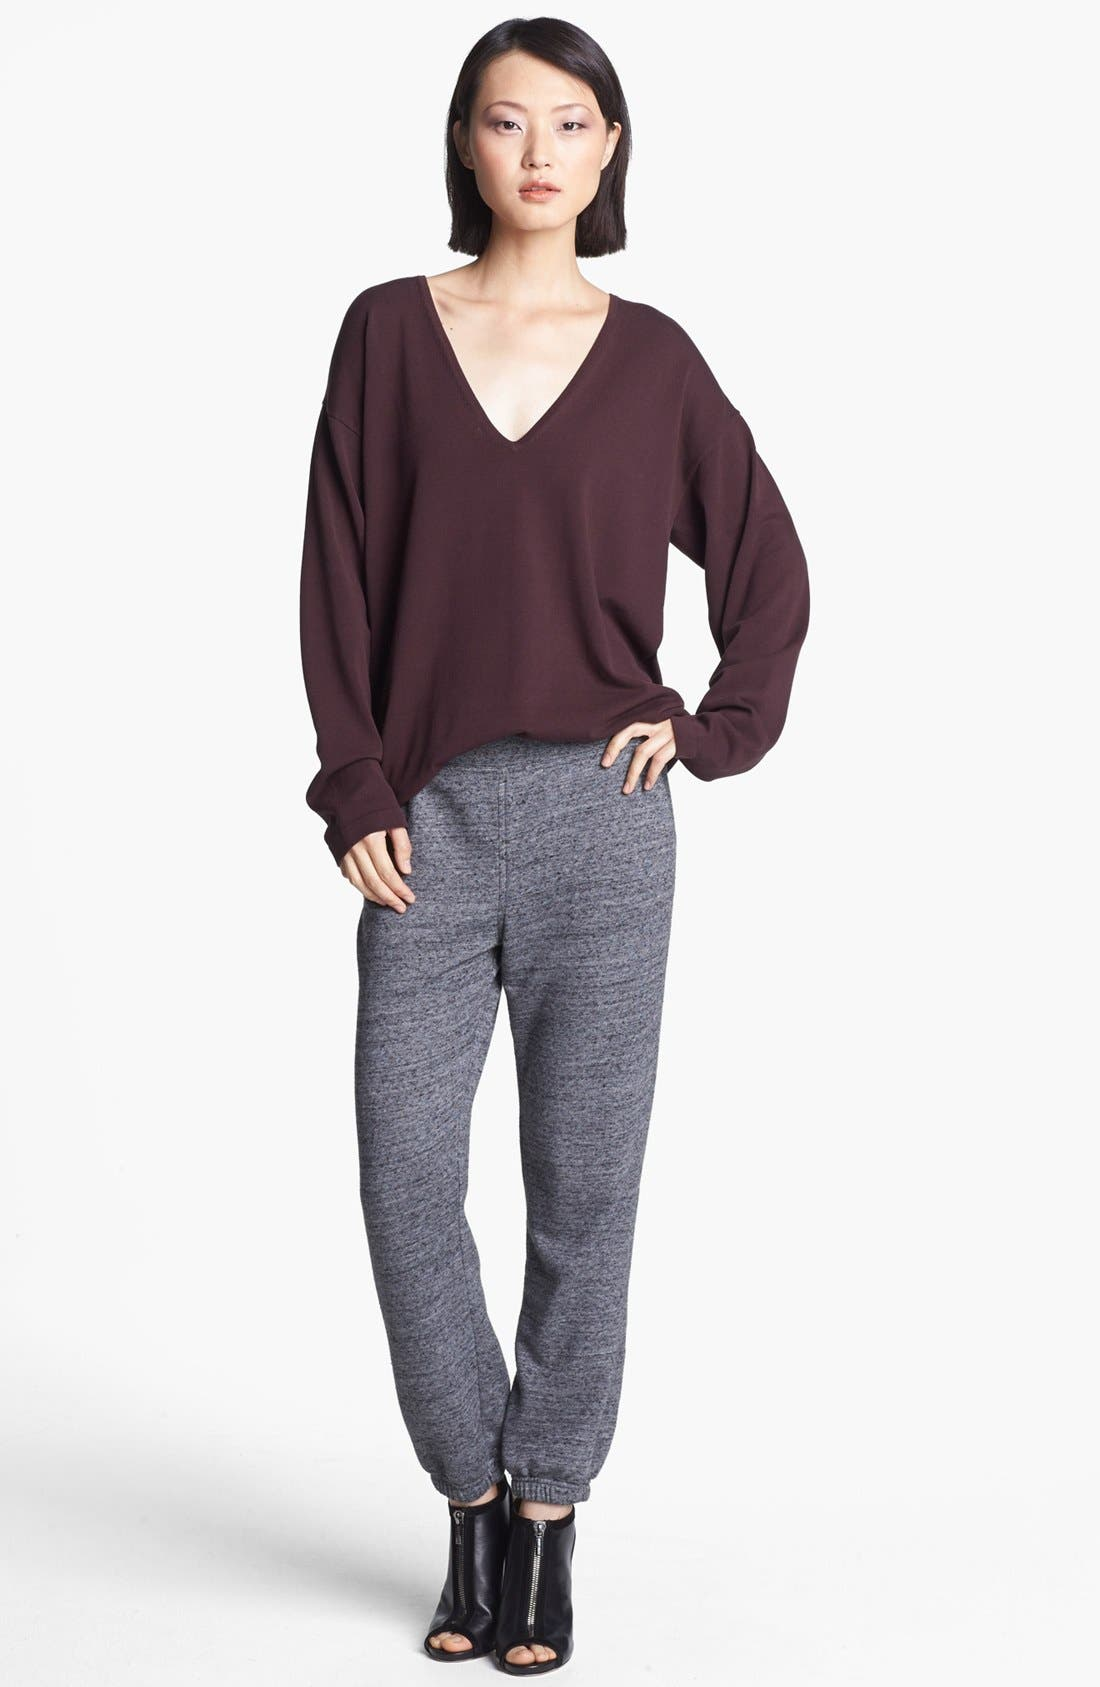 Main Image - T by Alexander Wang Pullover & Sweatpants